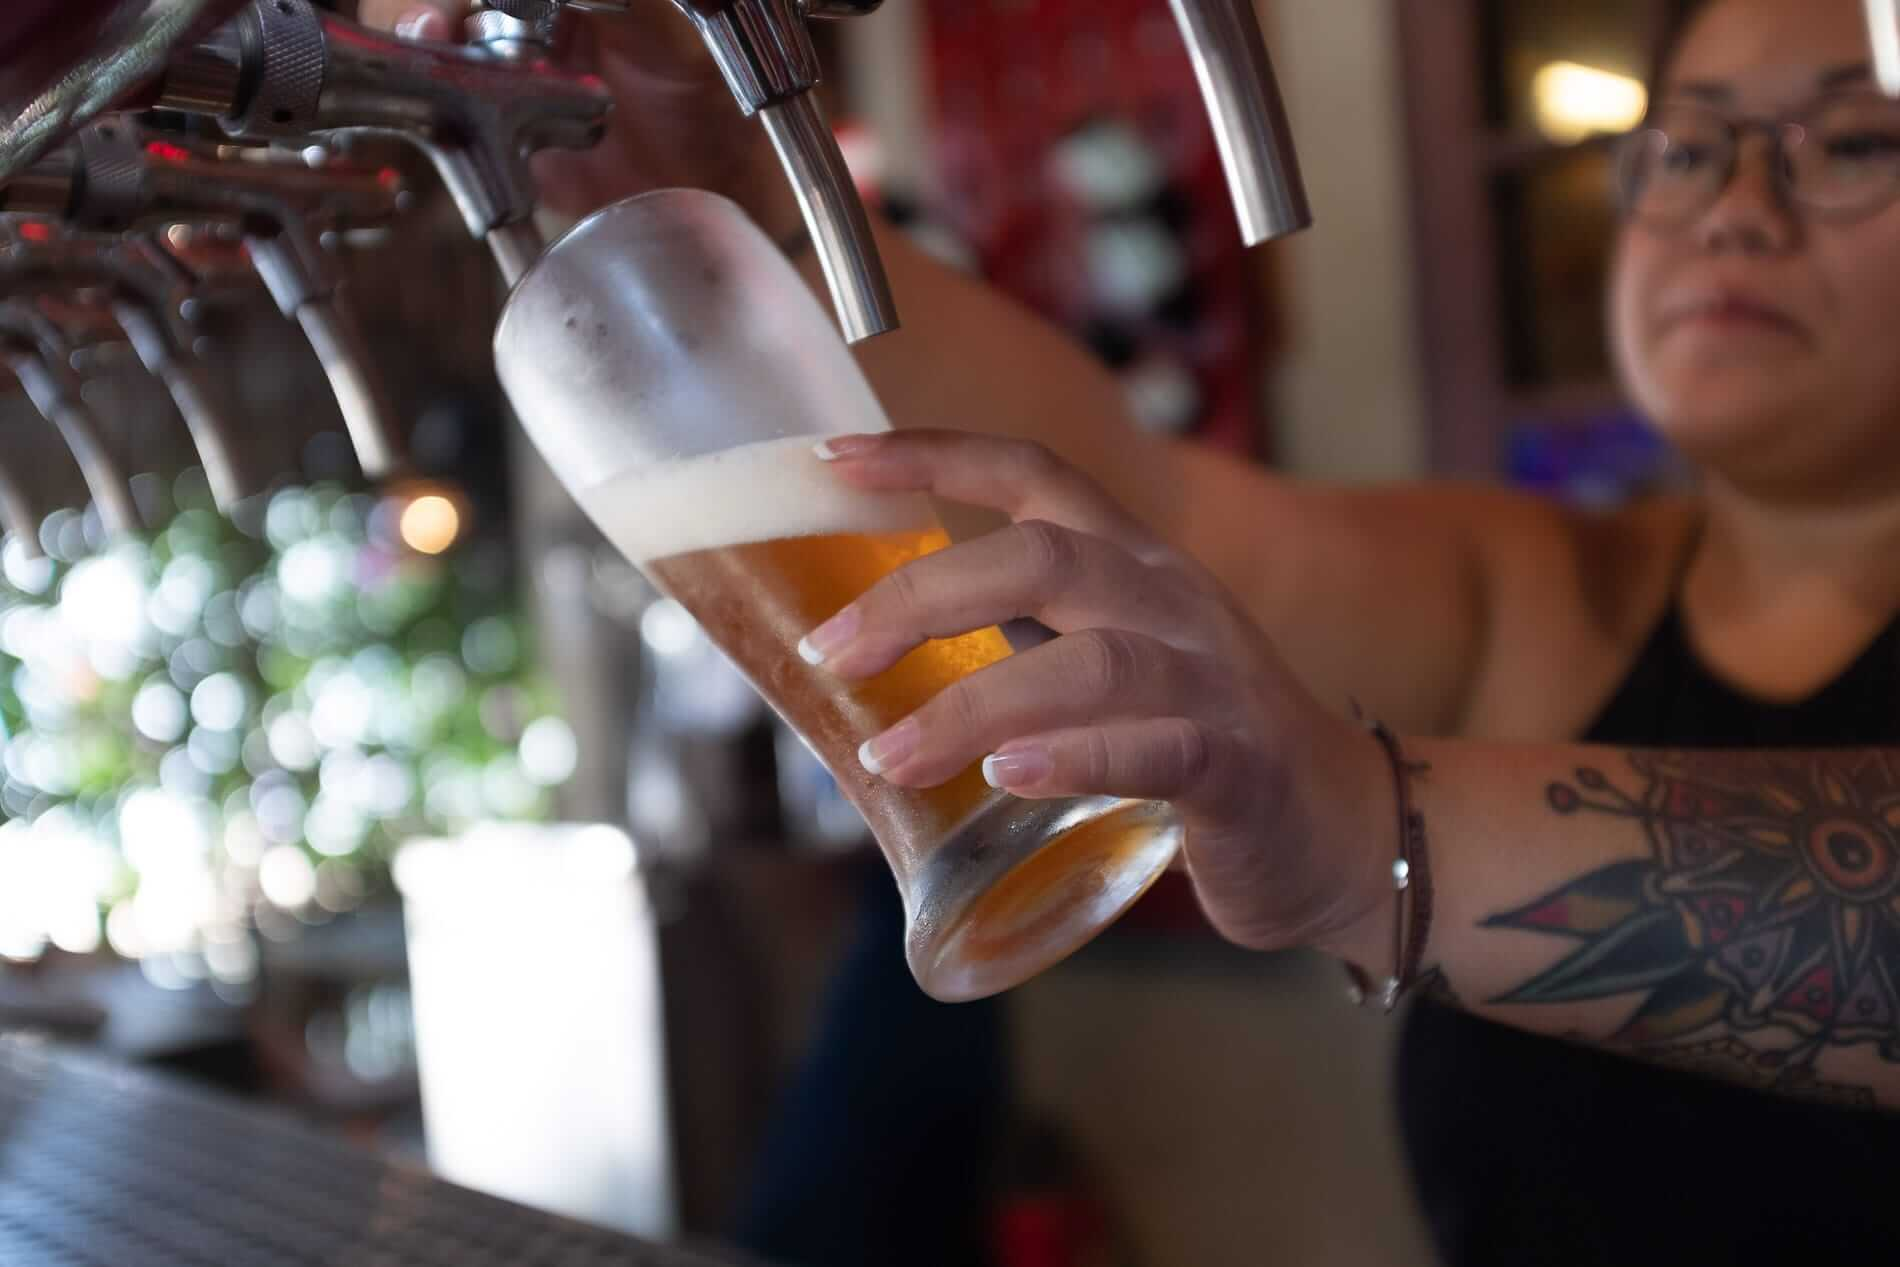 Local flavours of Artisan Brewery beer - Craft Beer in Hoi An